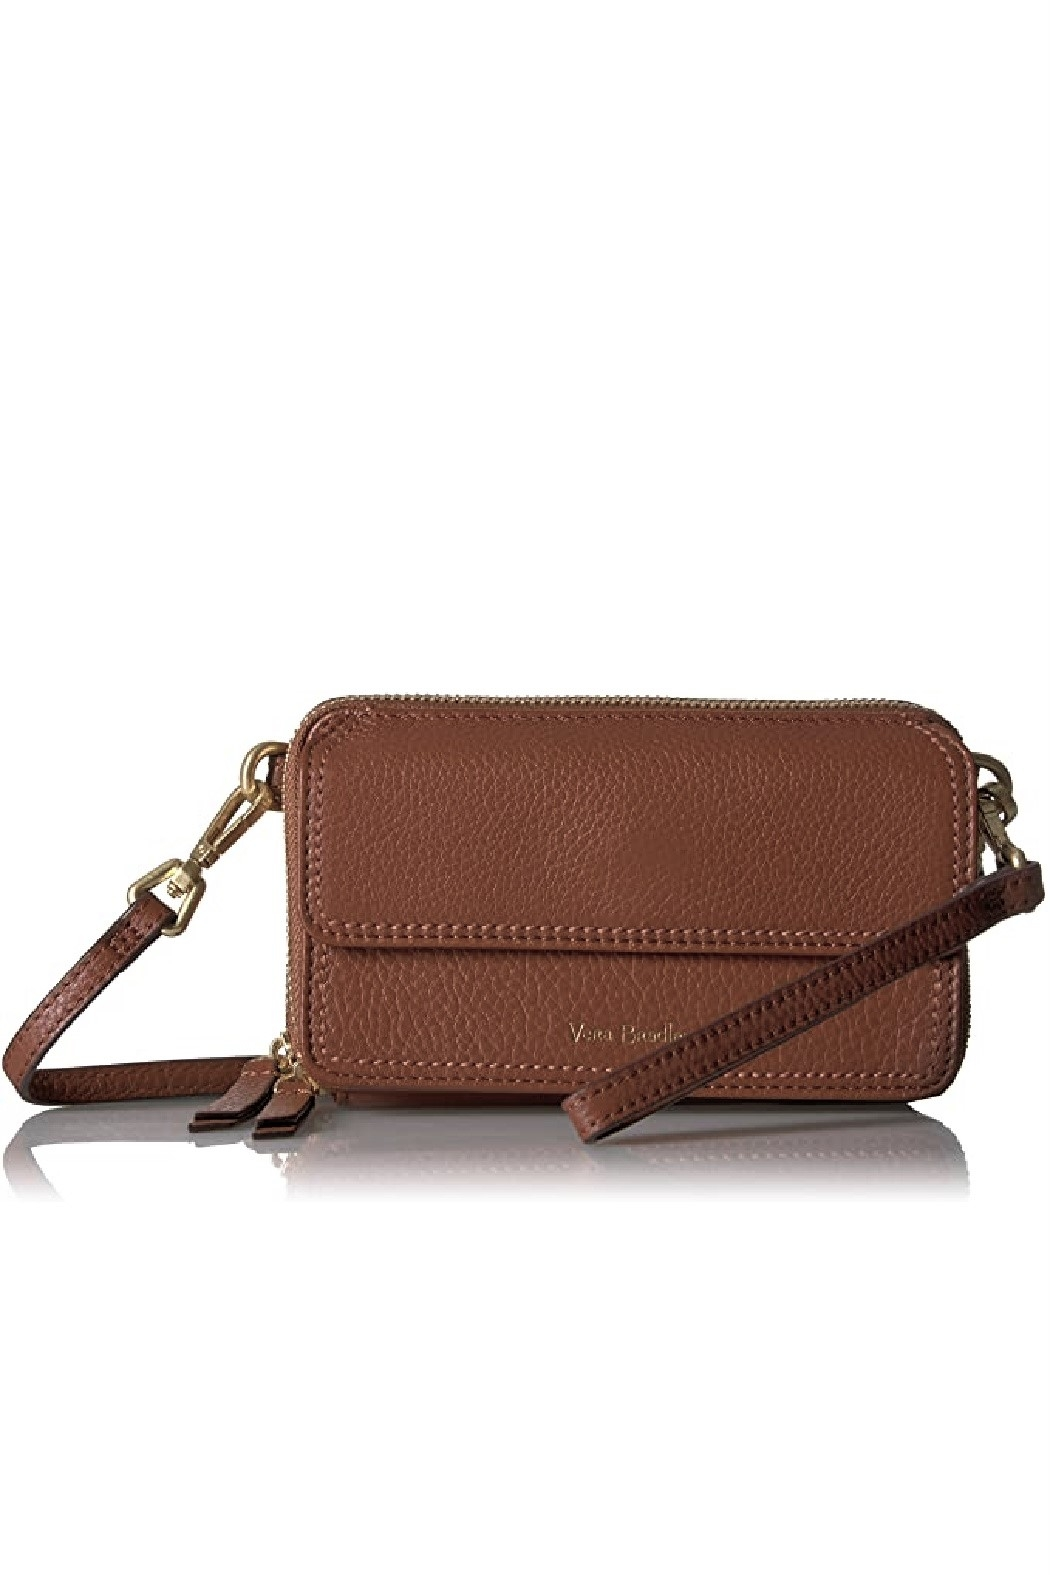 Vera Bradley Mesa Brown Leather Mallory All In One - Main Image